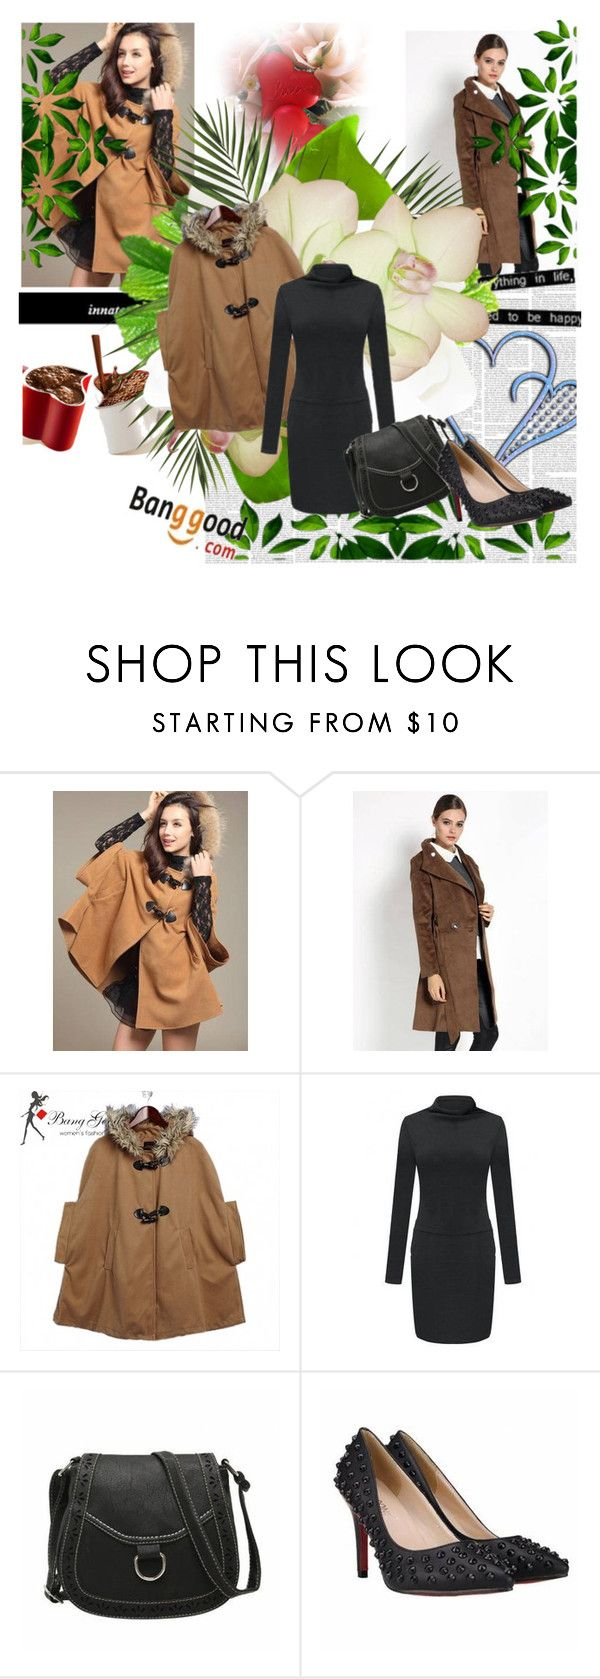 """""""BANGGOOD"""" by newoutfit ❤ liked on Polyvore featuring Victoria Beckham, women's clothing, women, female, woman, misses and juniors"""